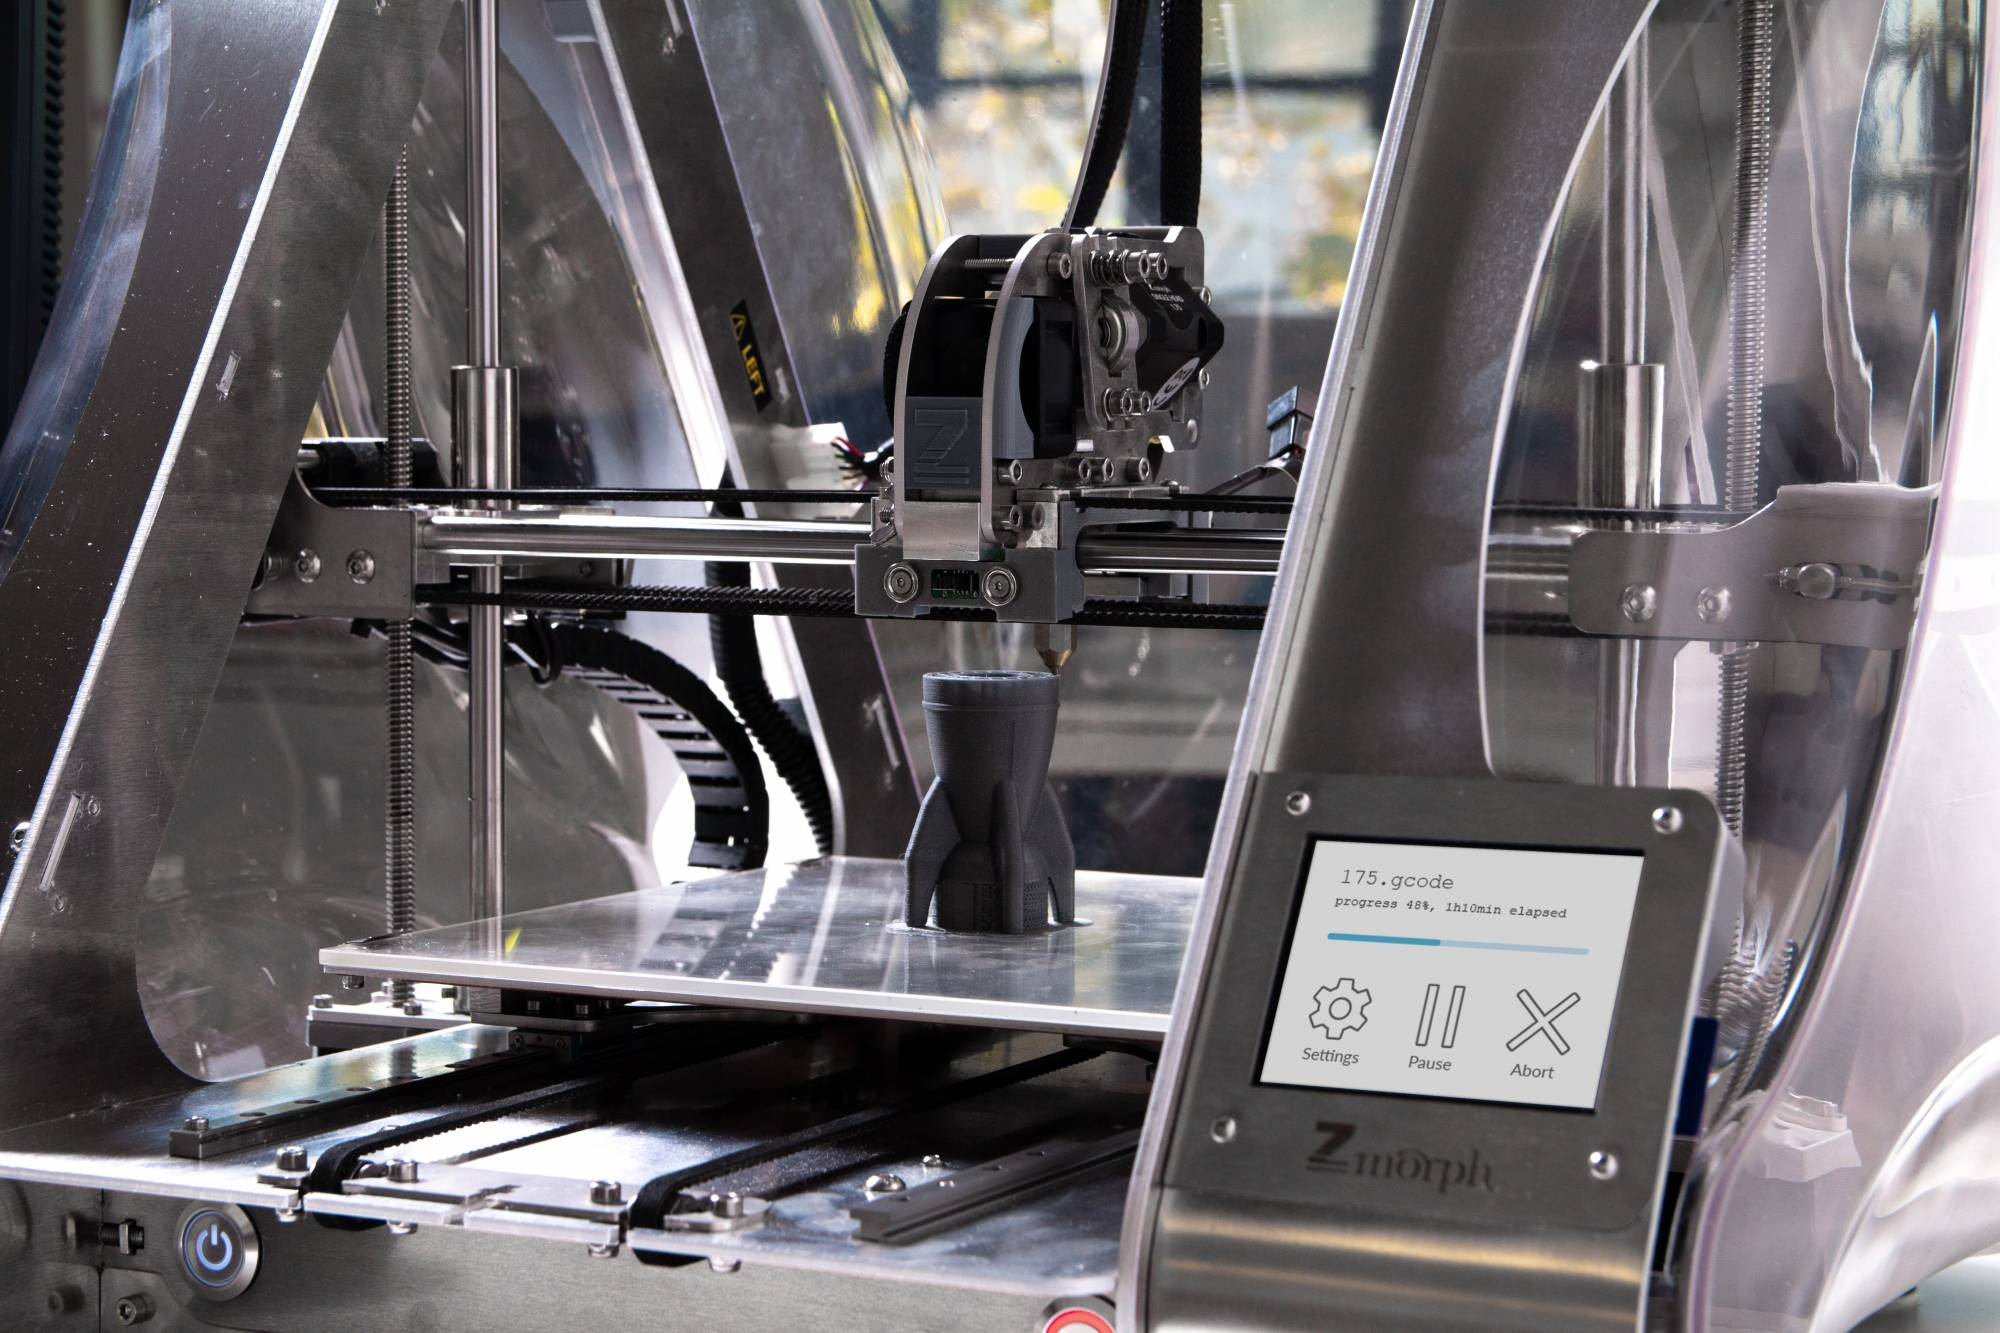 Close up of 3D model being printed